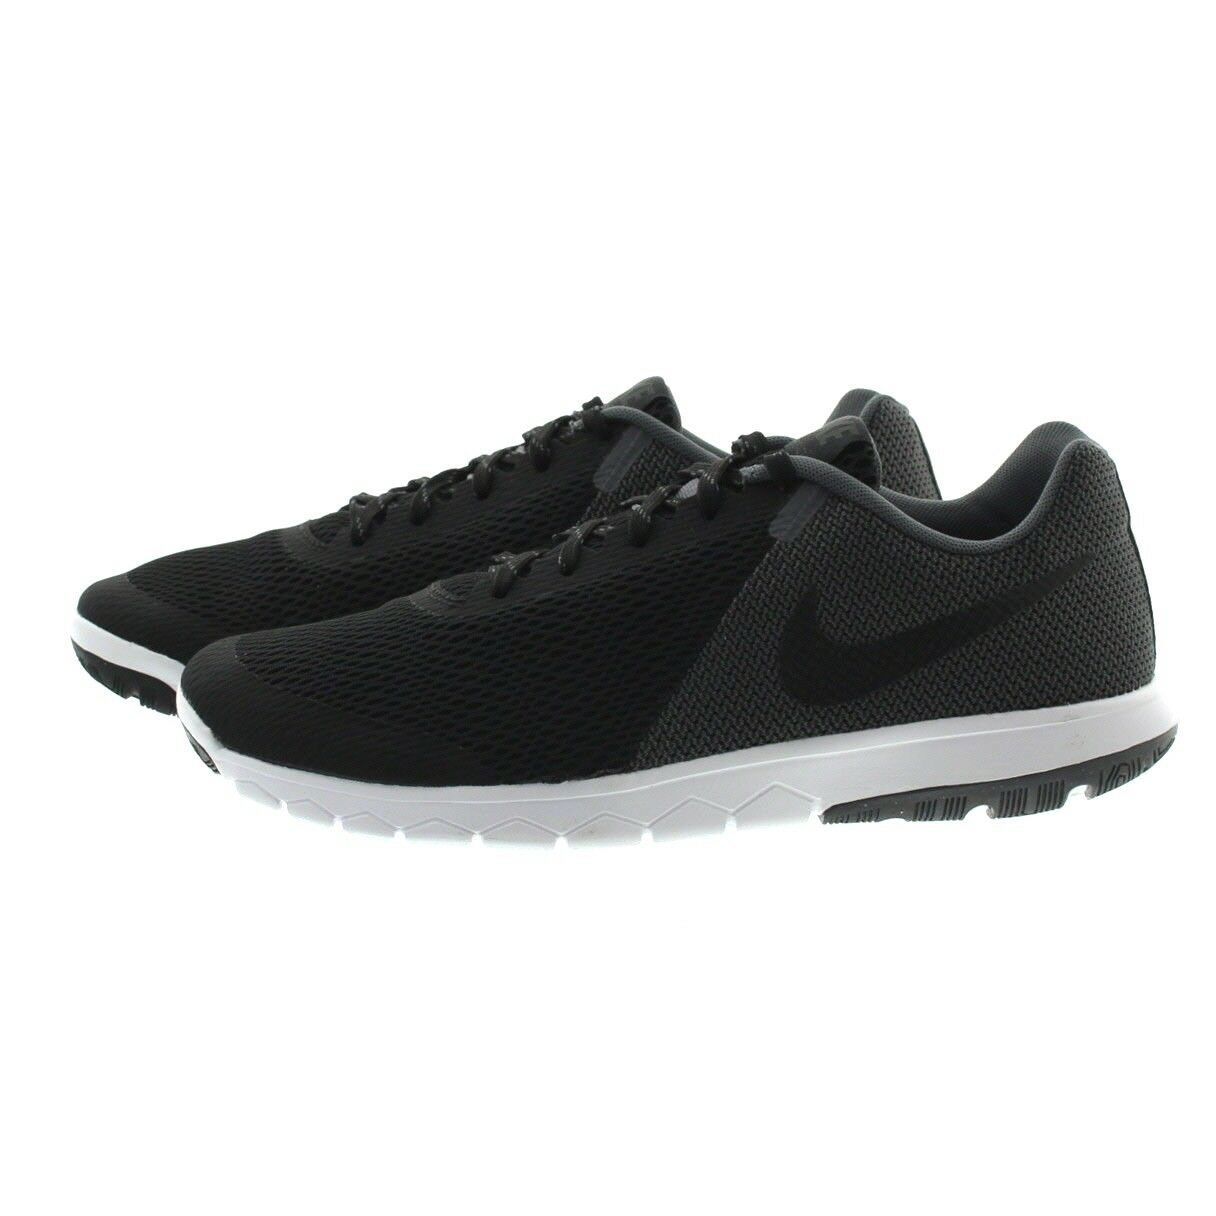 new arrival 2c1fb 09d51 Nike 844586 002 Mens Flex Experience RN 5 Wide Running Running Running Shoes  Sneakers 8e8b15